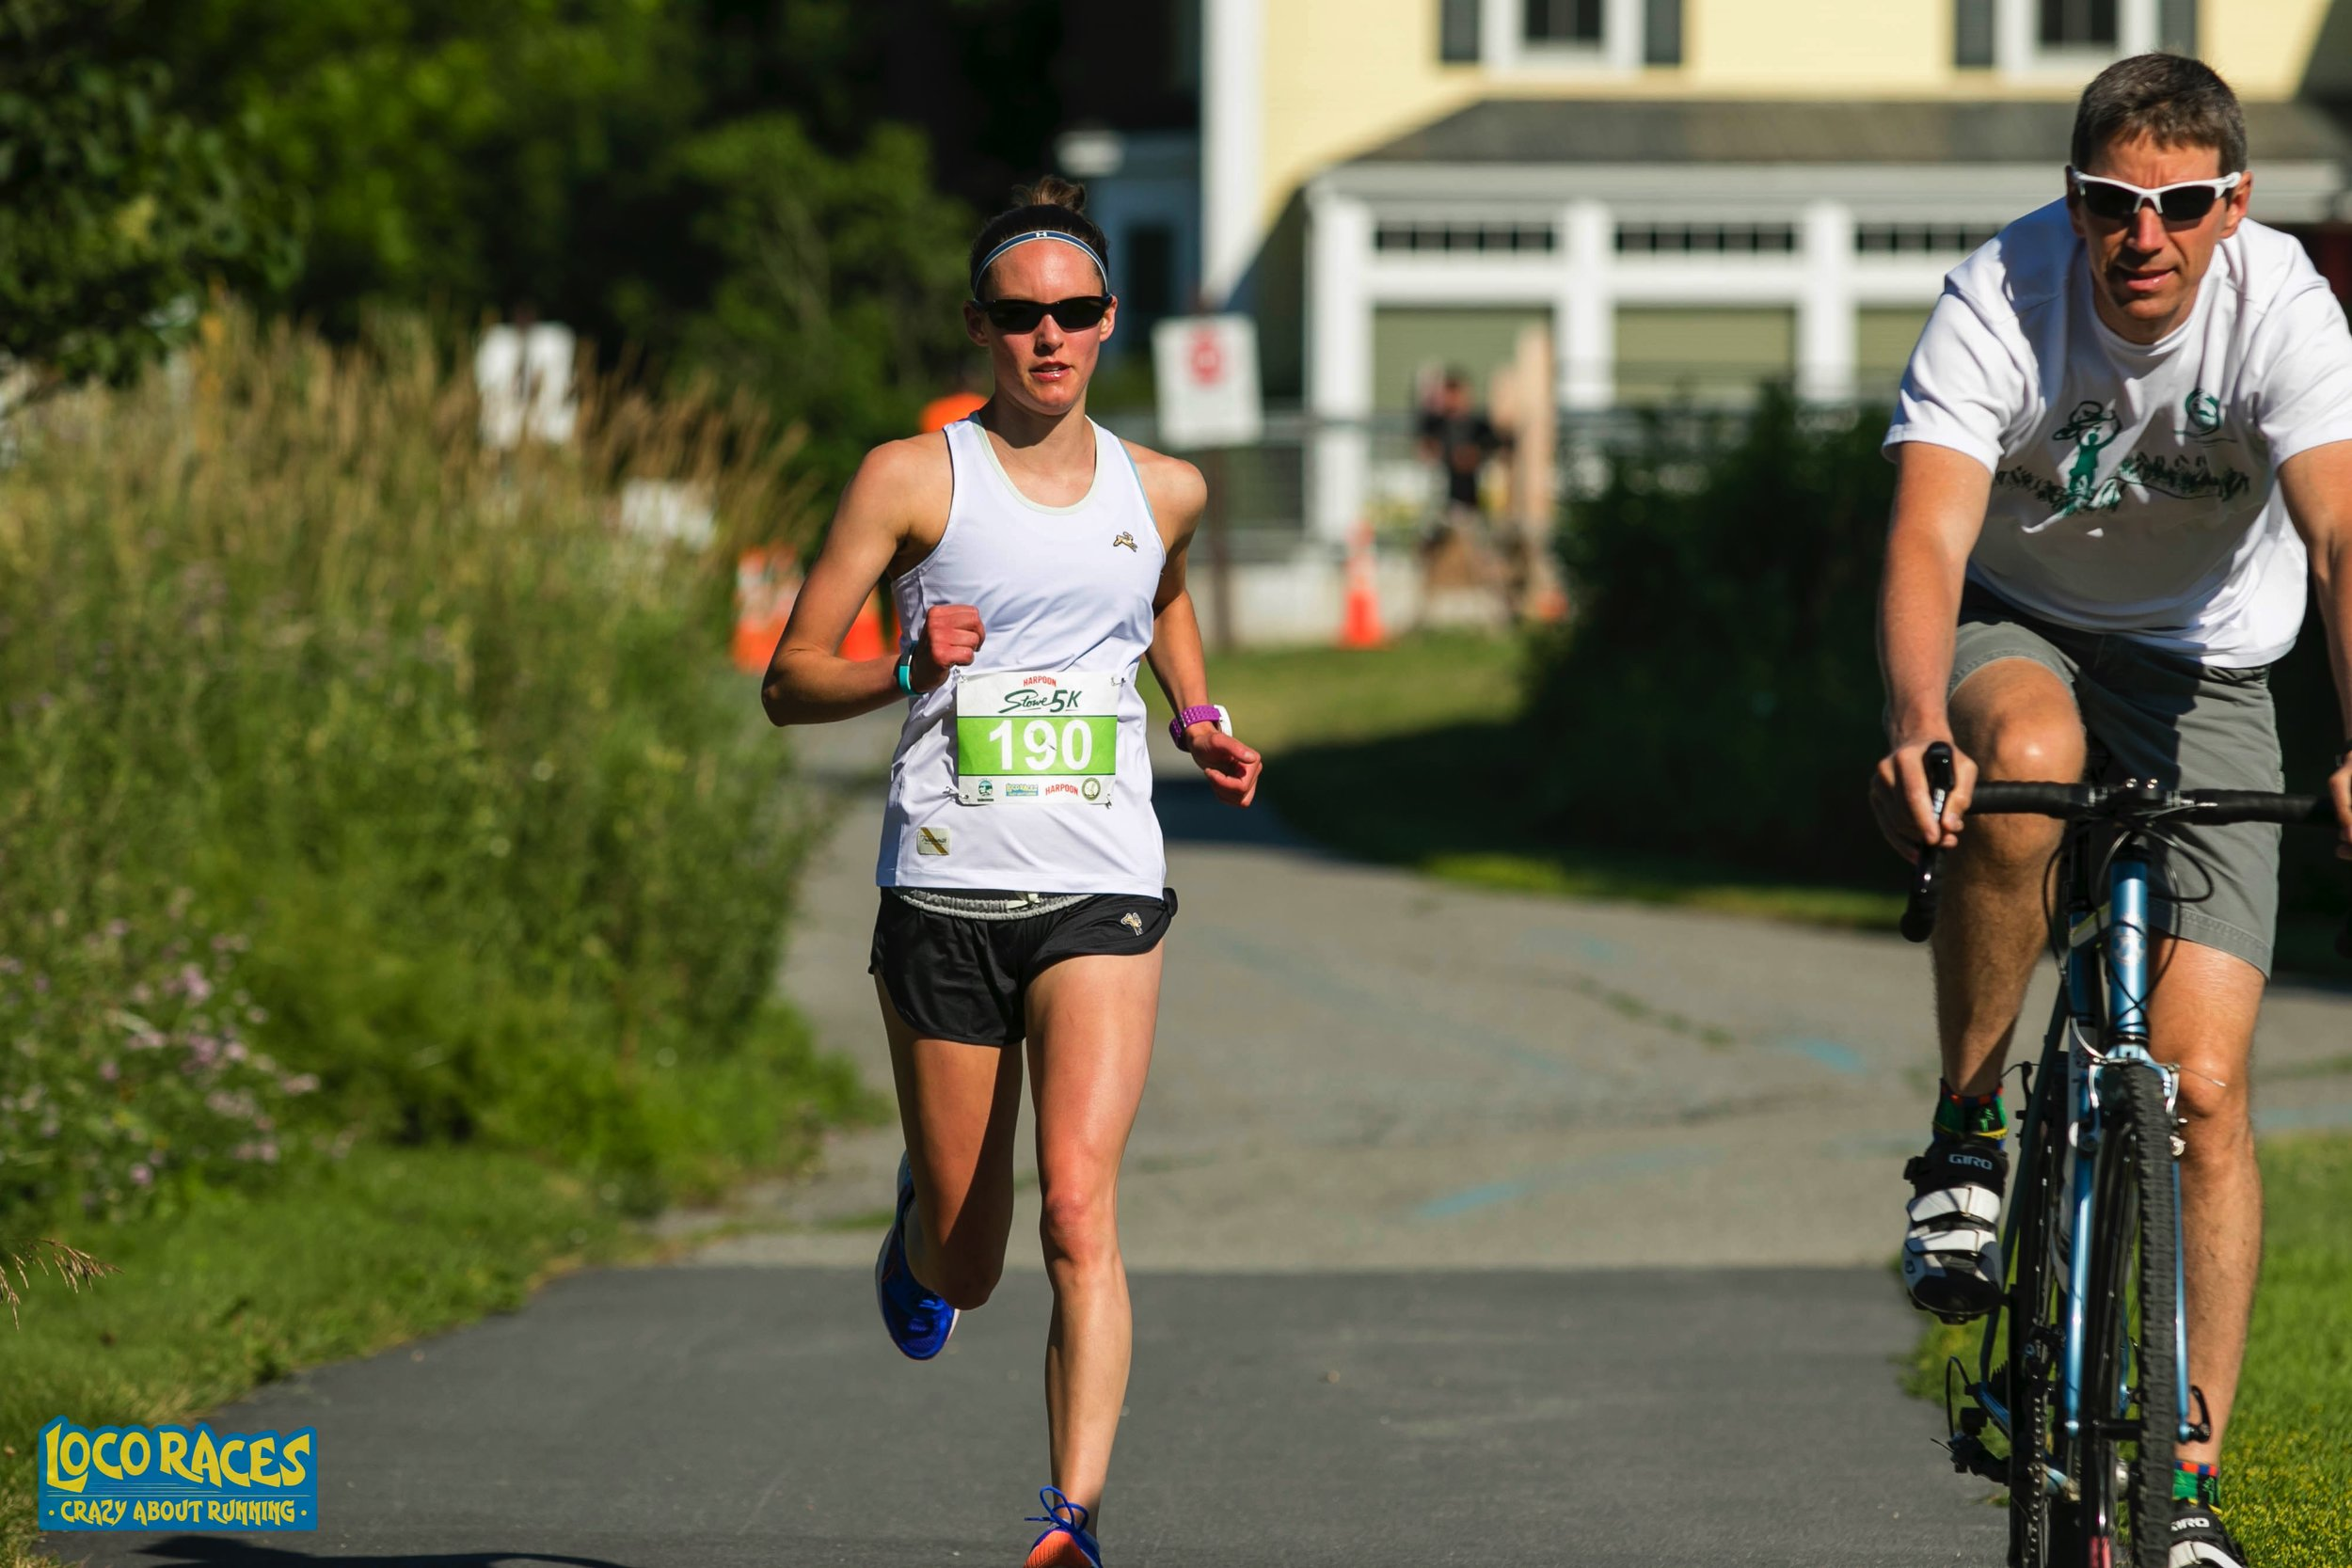 Photo from my 5k race 2 weeks ago. So thankful for the guy on the bike - you are the best!!